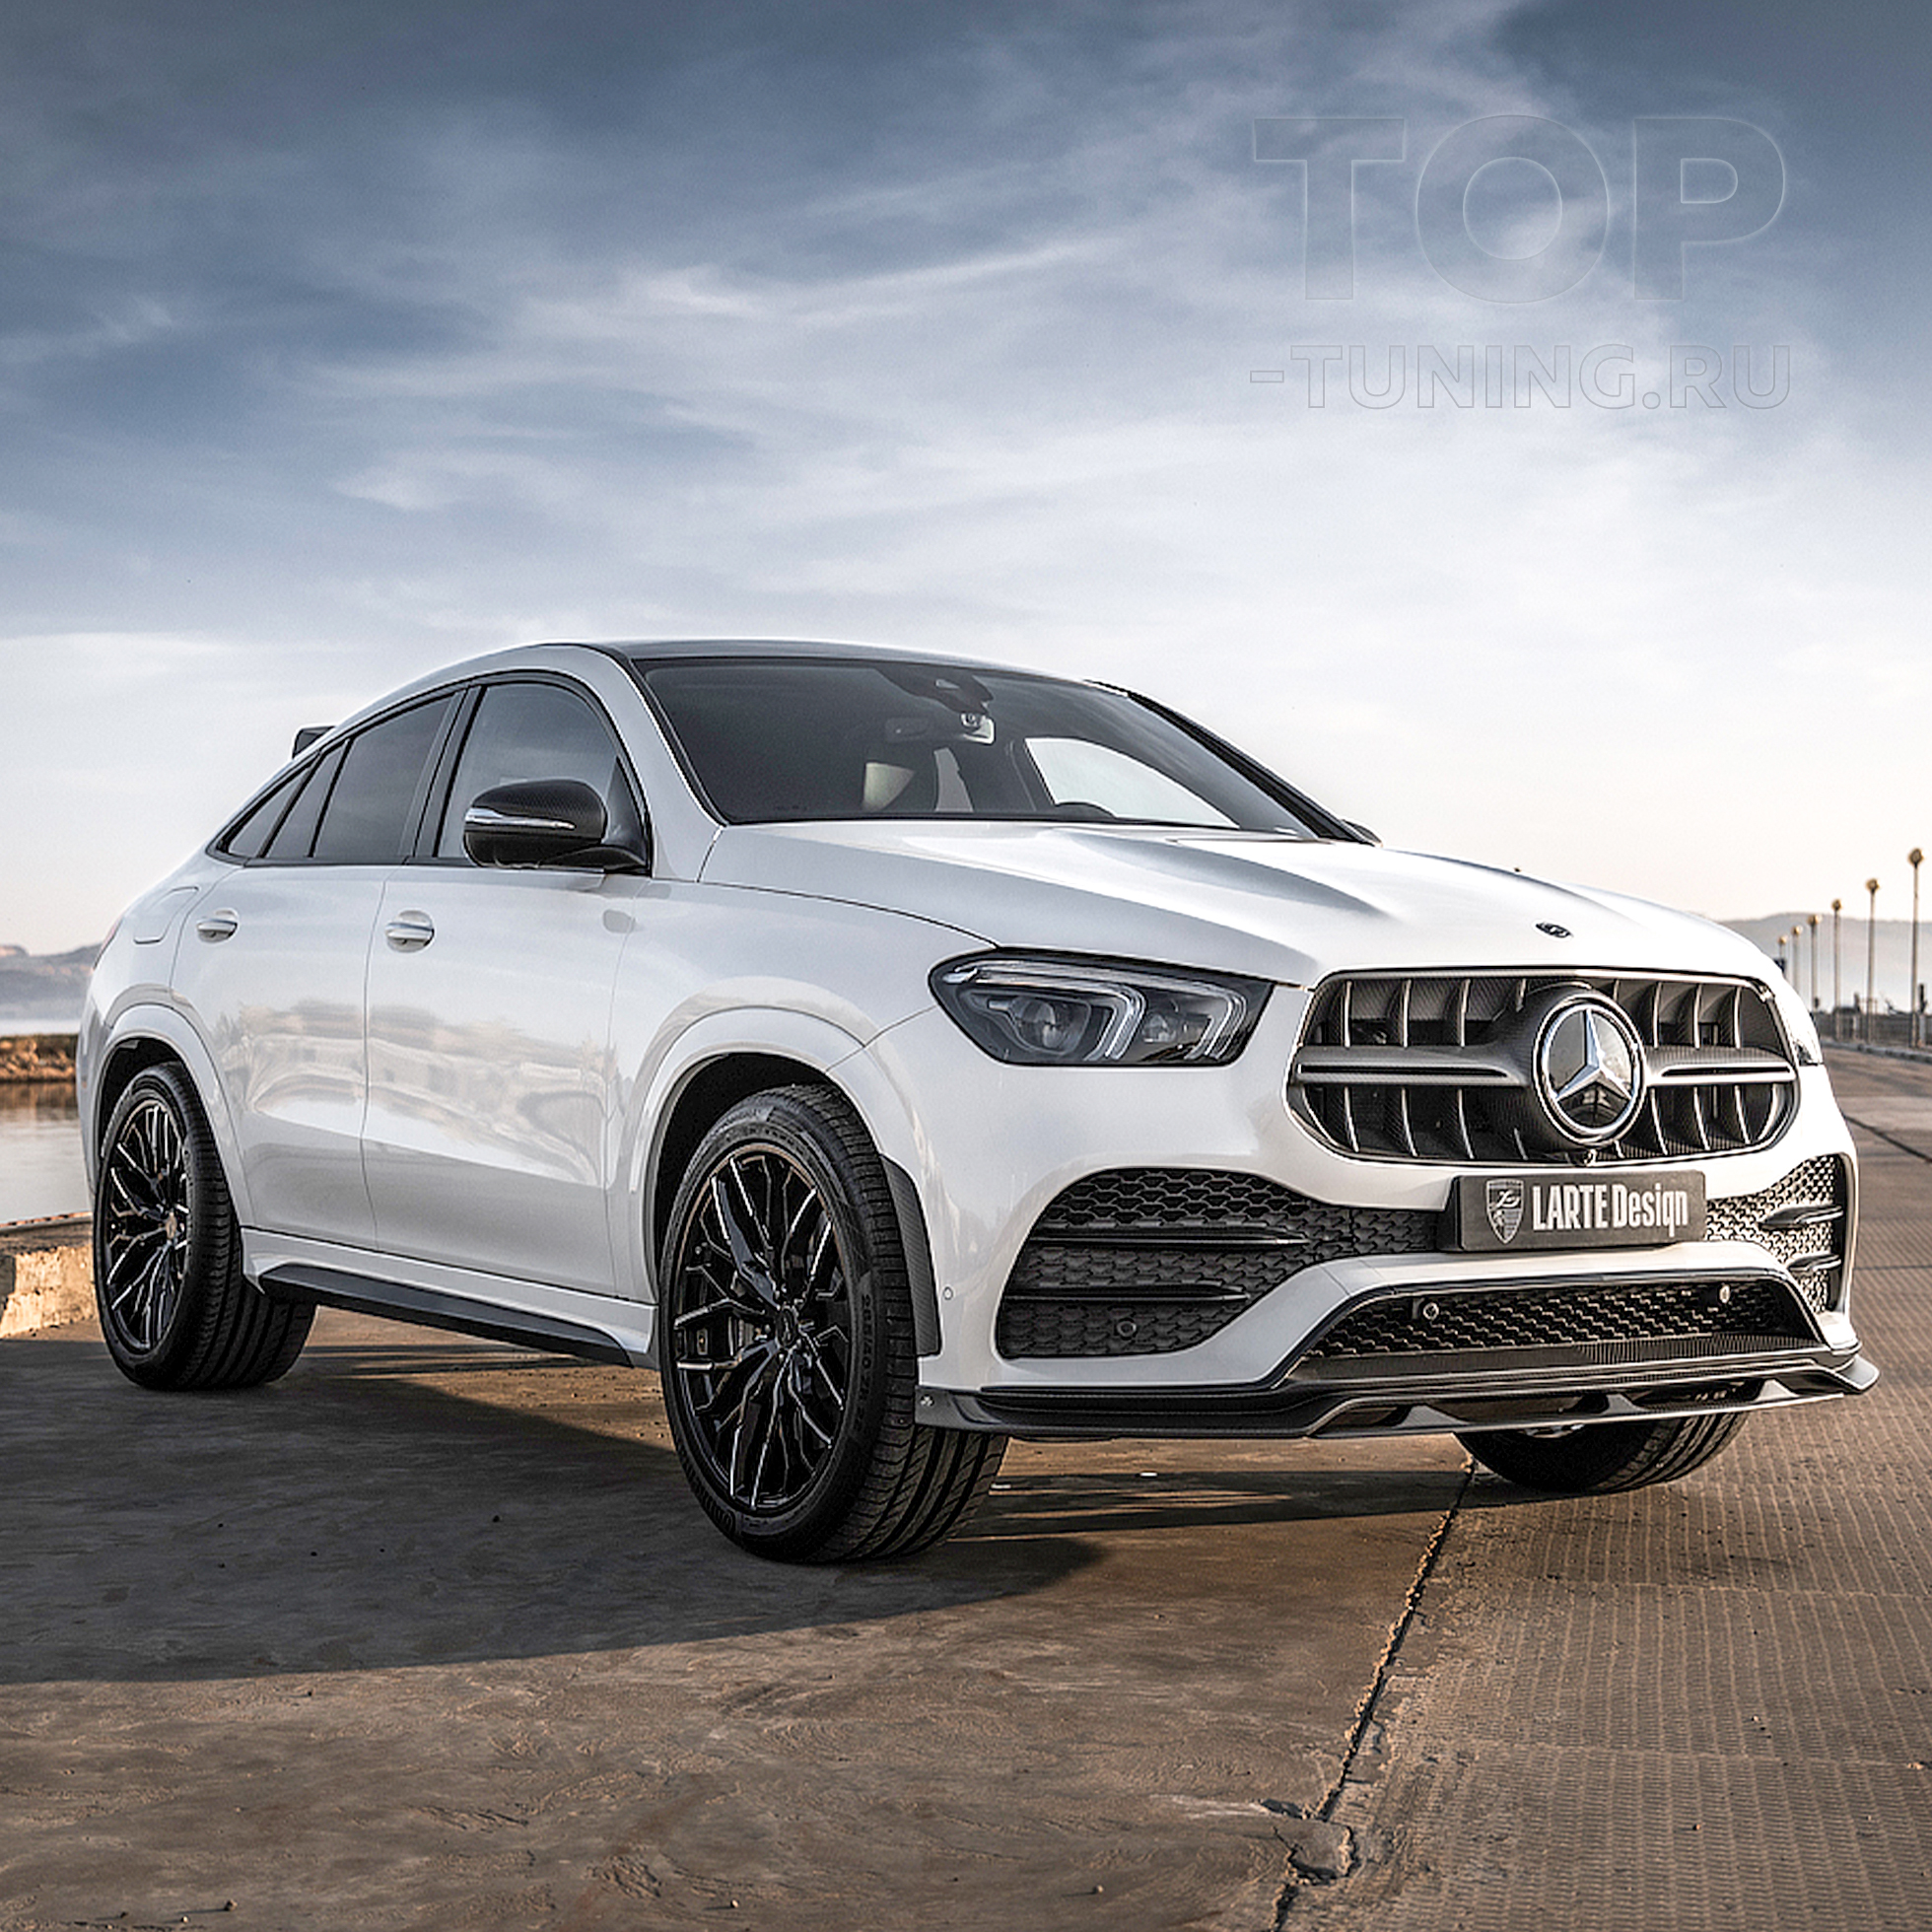 Обвес Winner Larte Design для Mercedes GLE Coupe